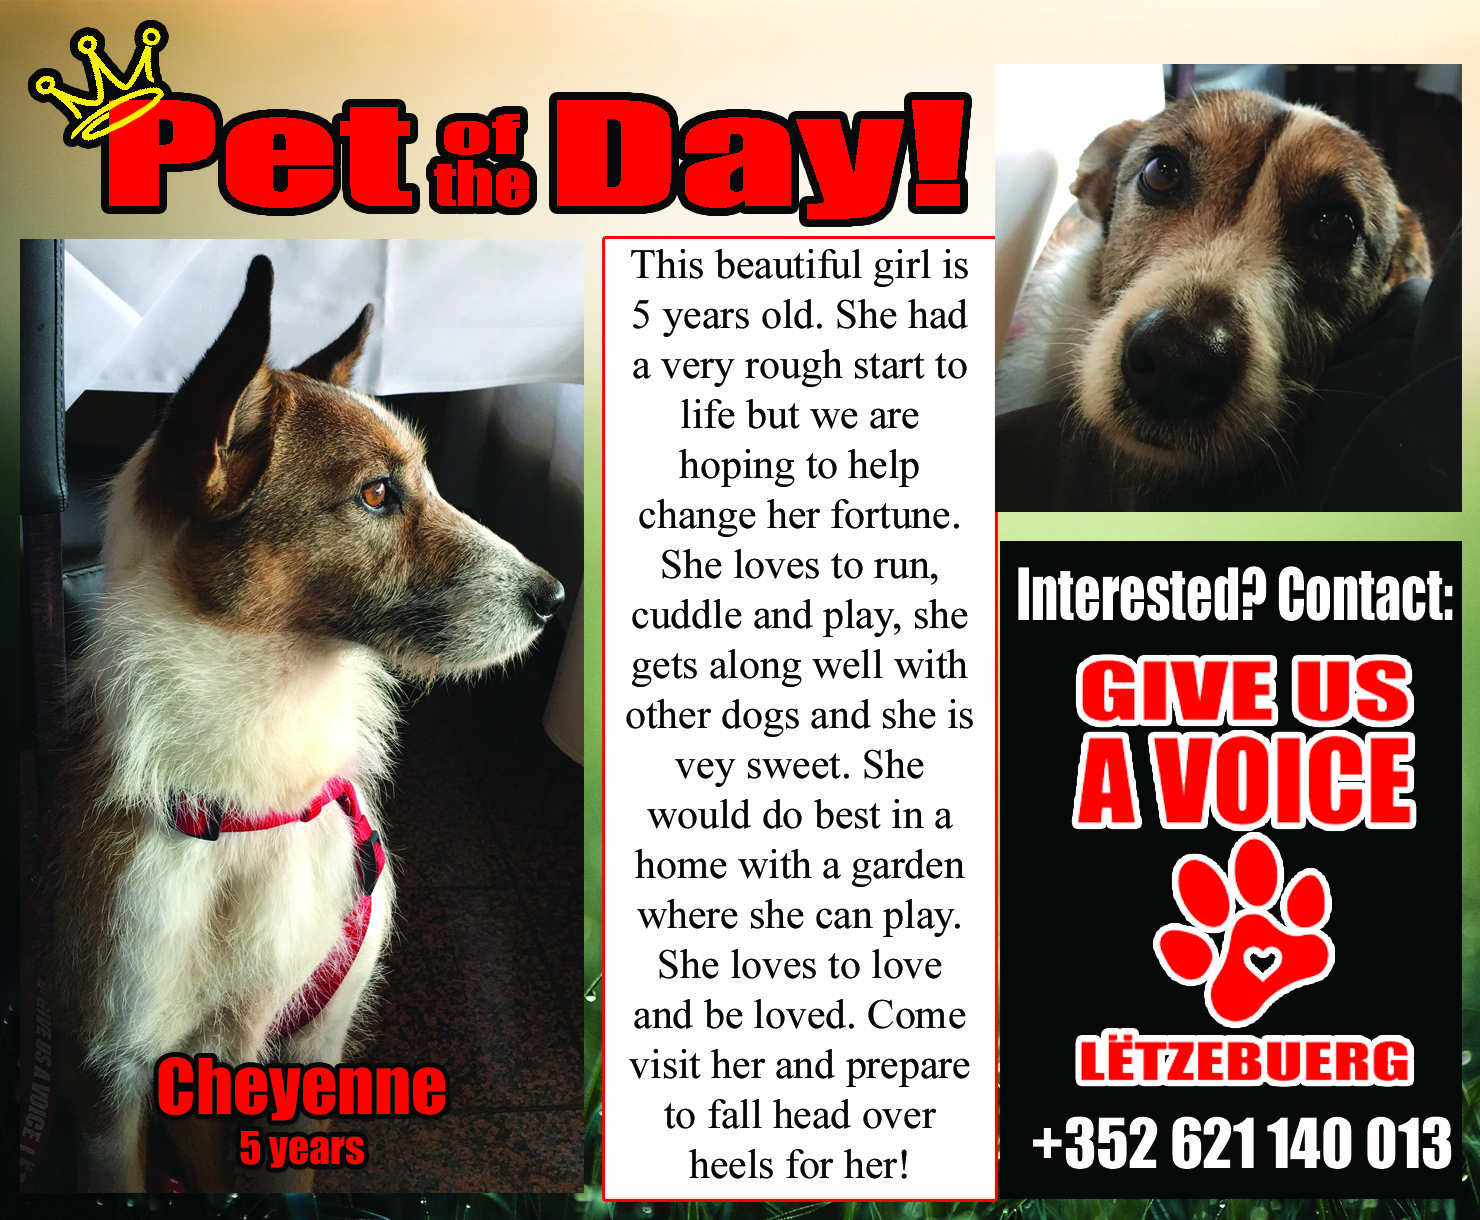 03-09-16 Pet of the Day